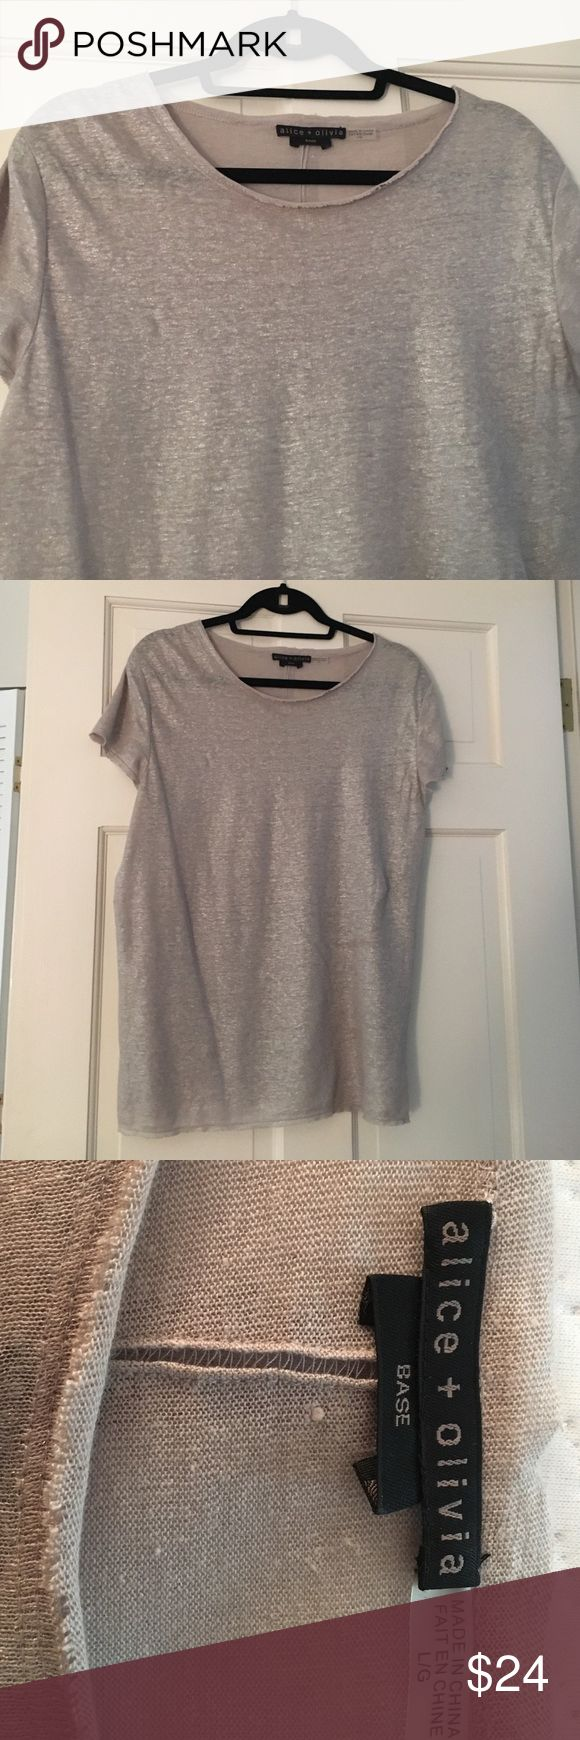 Alice and Olivera silk silver metallic tee Dressy tee shirt. Linen and silk metallic silver tee. Dress up or down! Perfect for layering Alice + Olivia Tops Tees - Short Sleeve